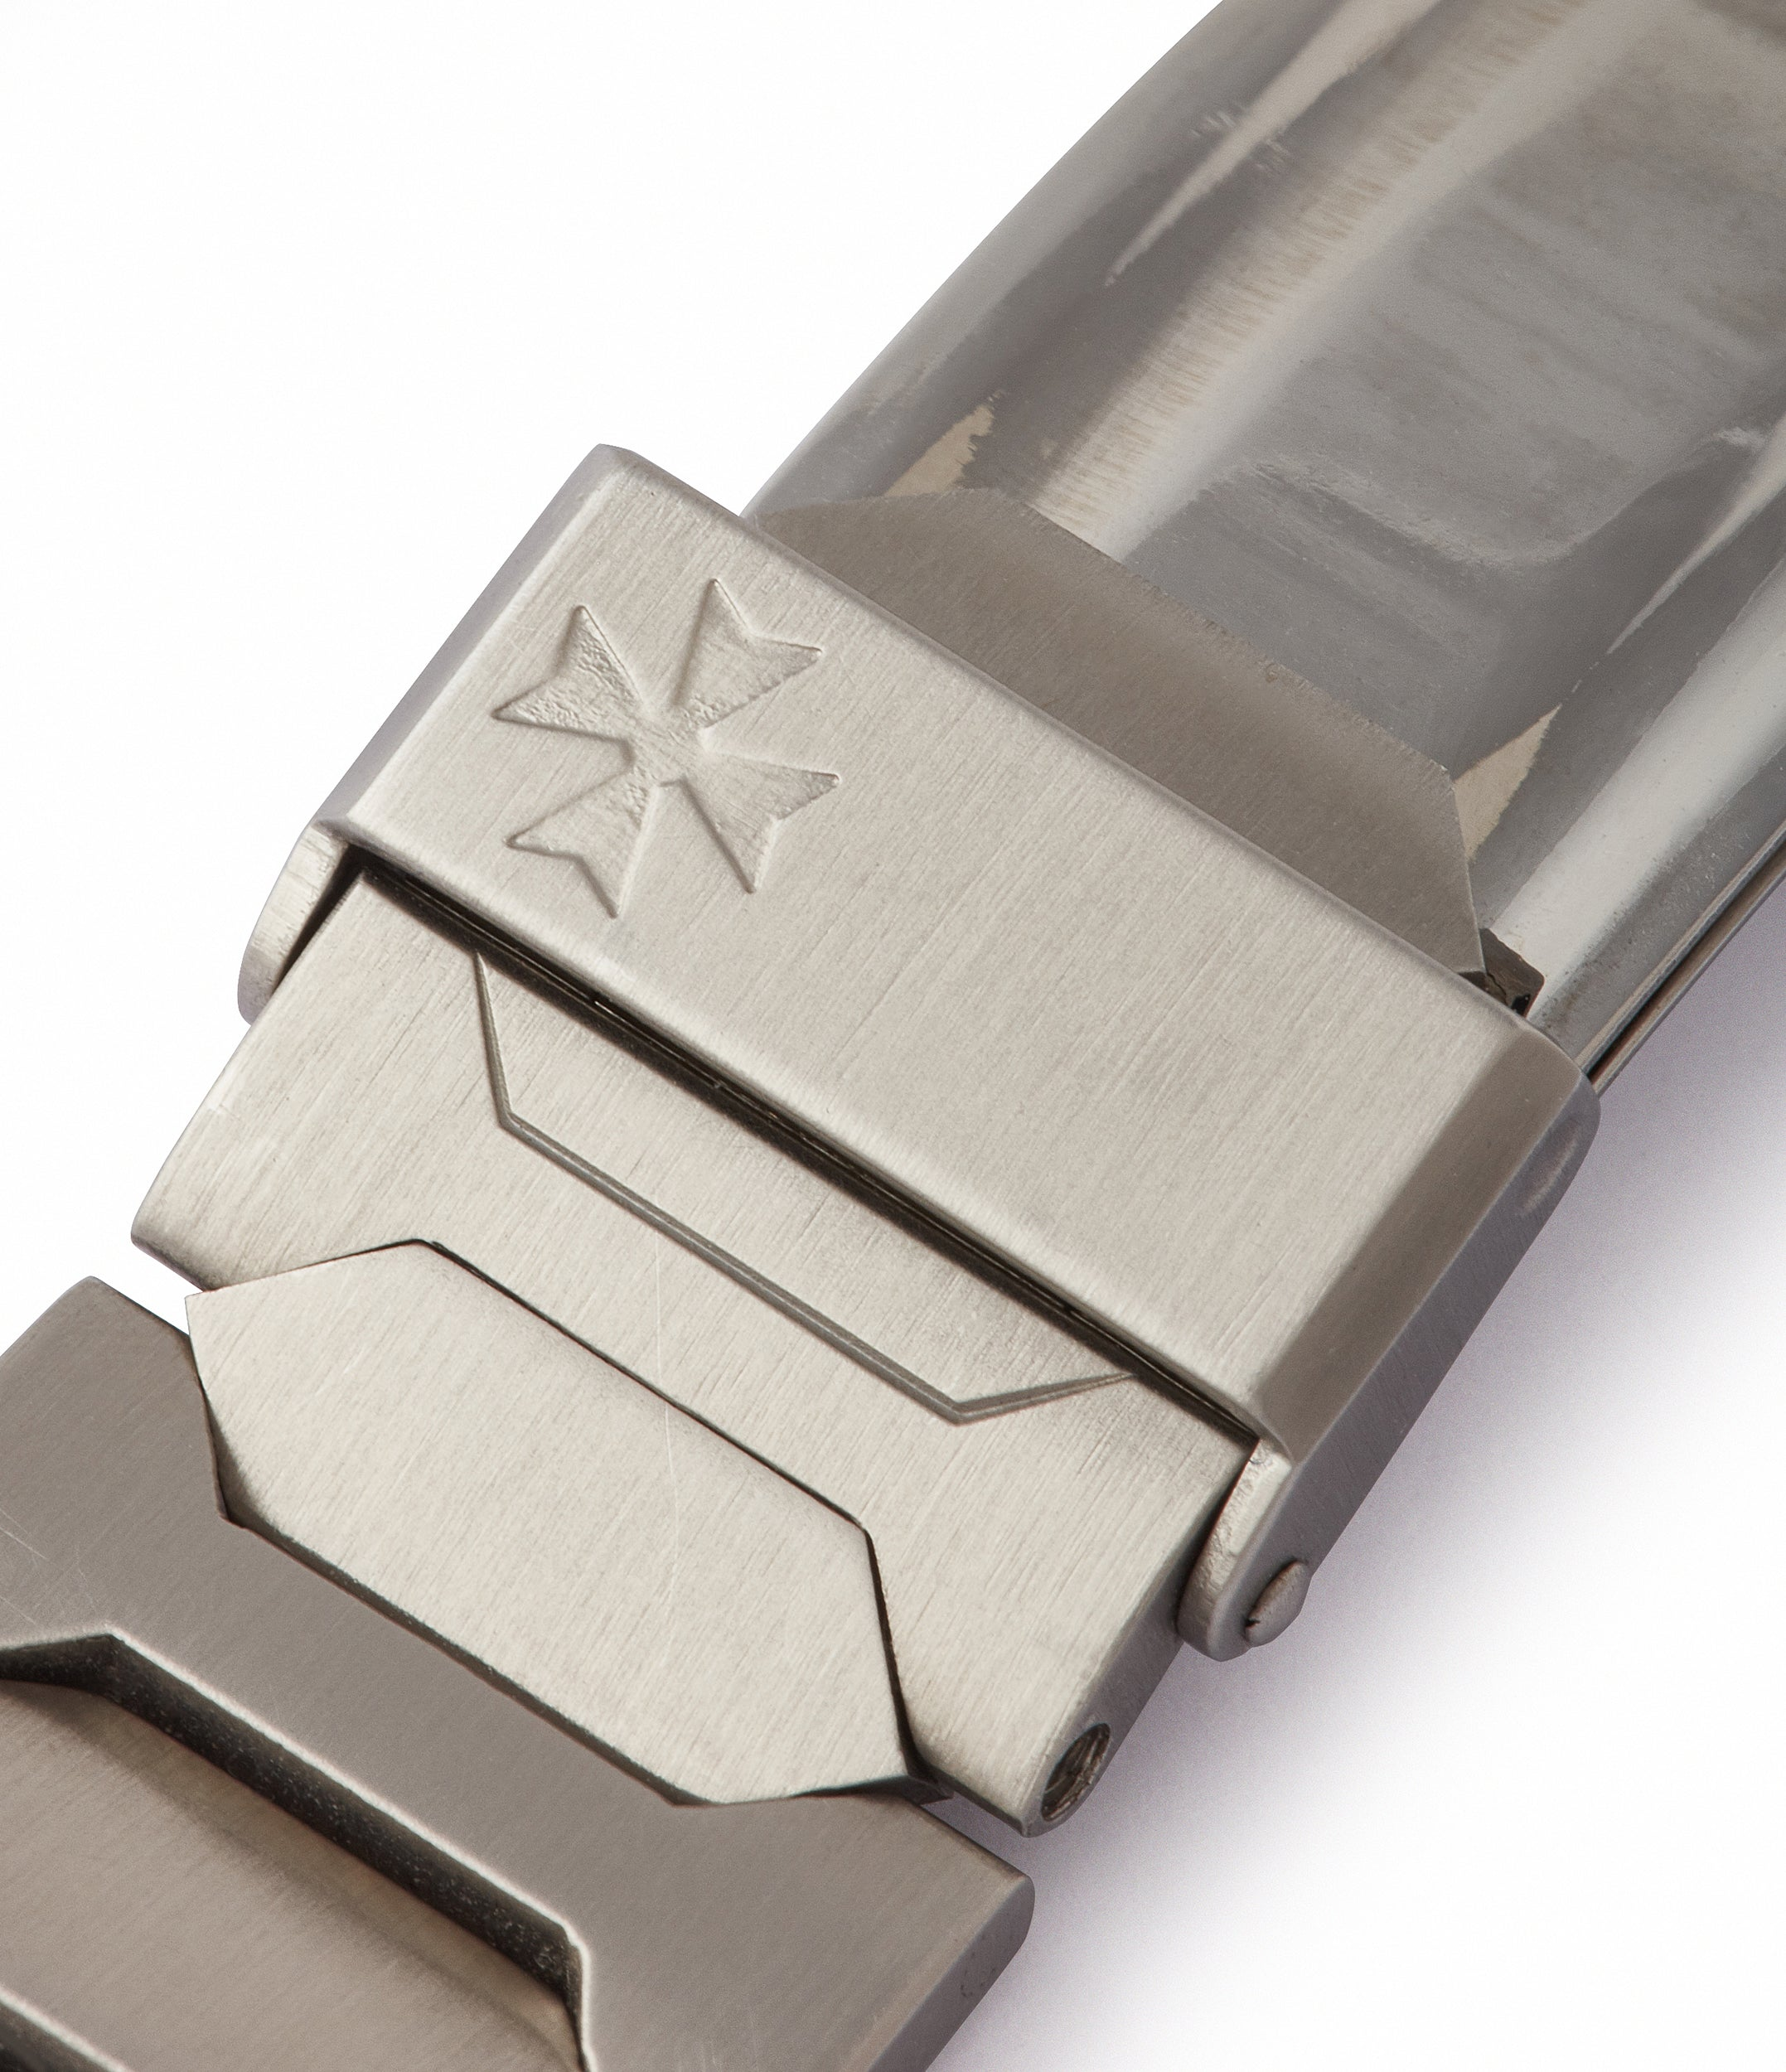 steel Vacheron Constantin bracelet 222 vintage steel grey dial sport watch for sale online at A Collected Man London UK specialist of rare watches